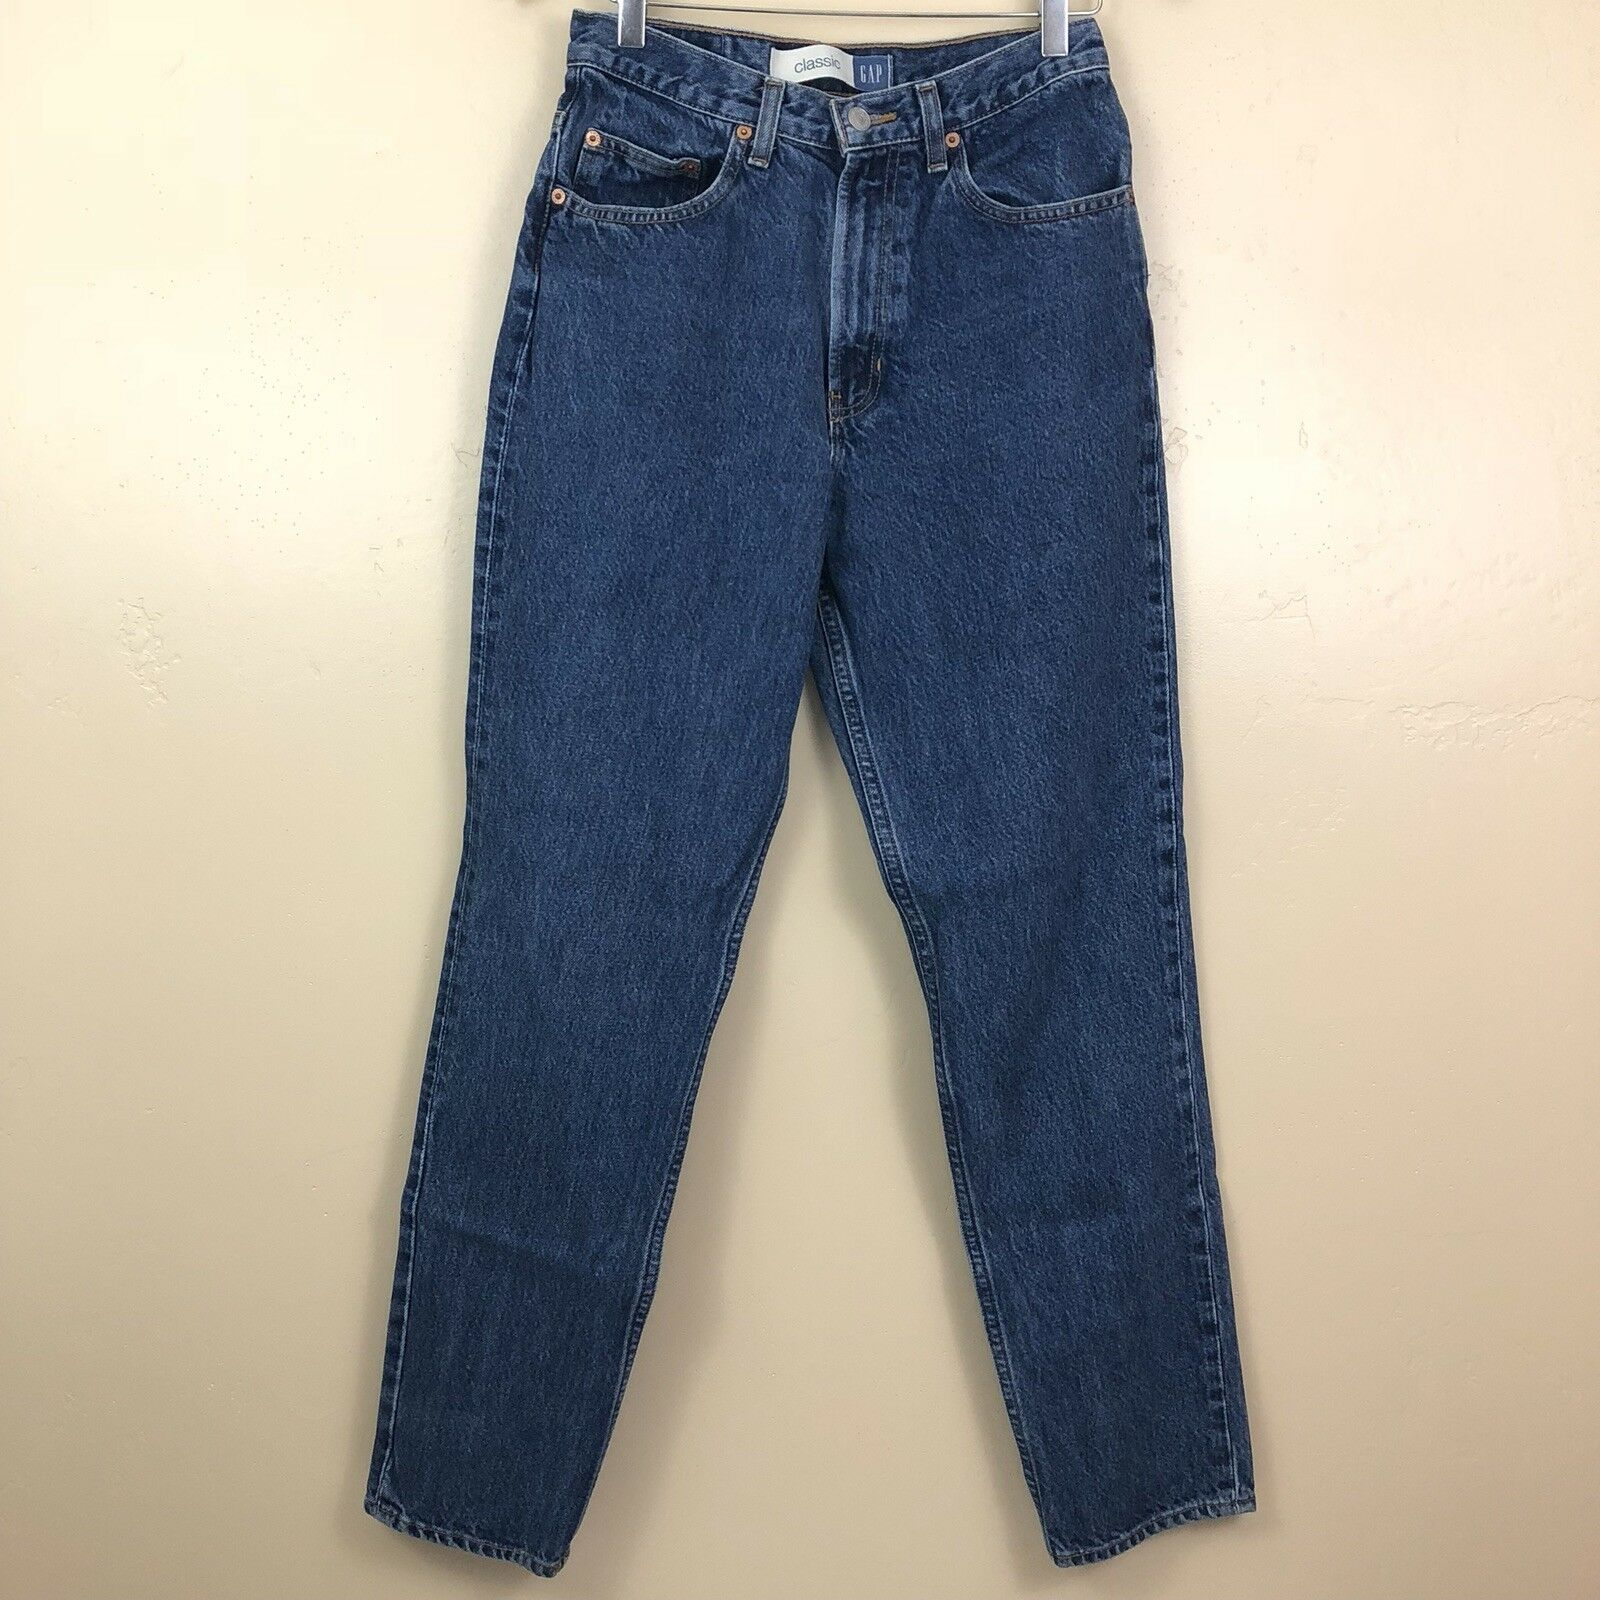 Vintage Womens Gap bluee Jeans 8 Classic Fit Cotton Tapered Leg High Rise 27x30